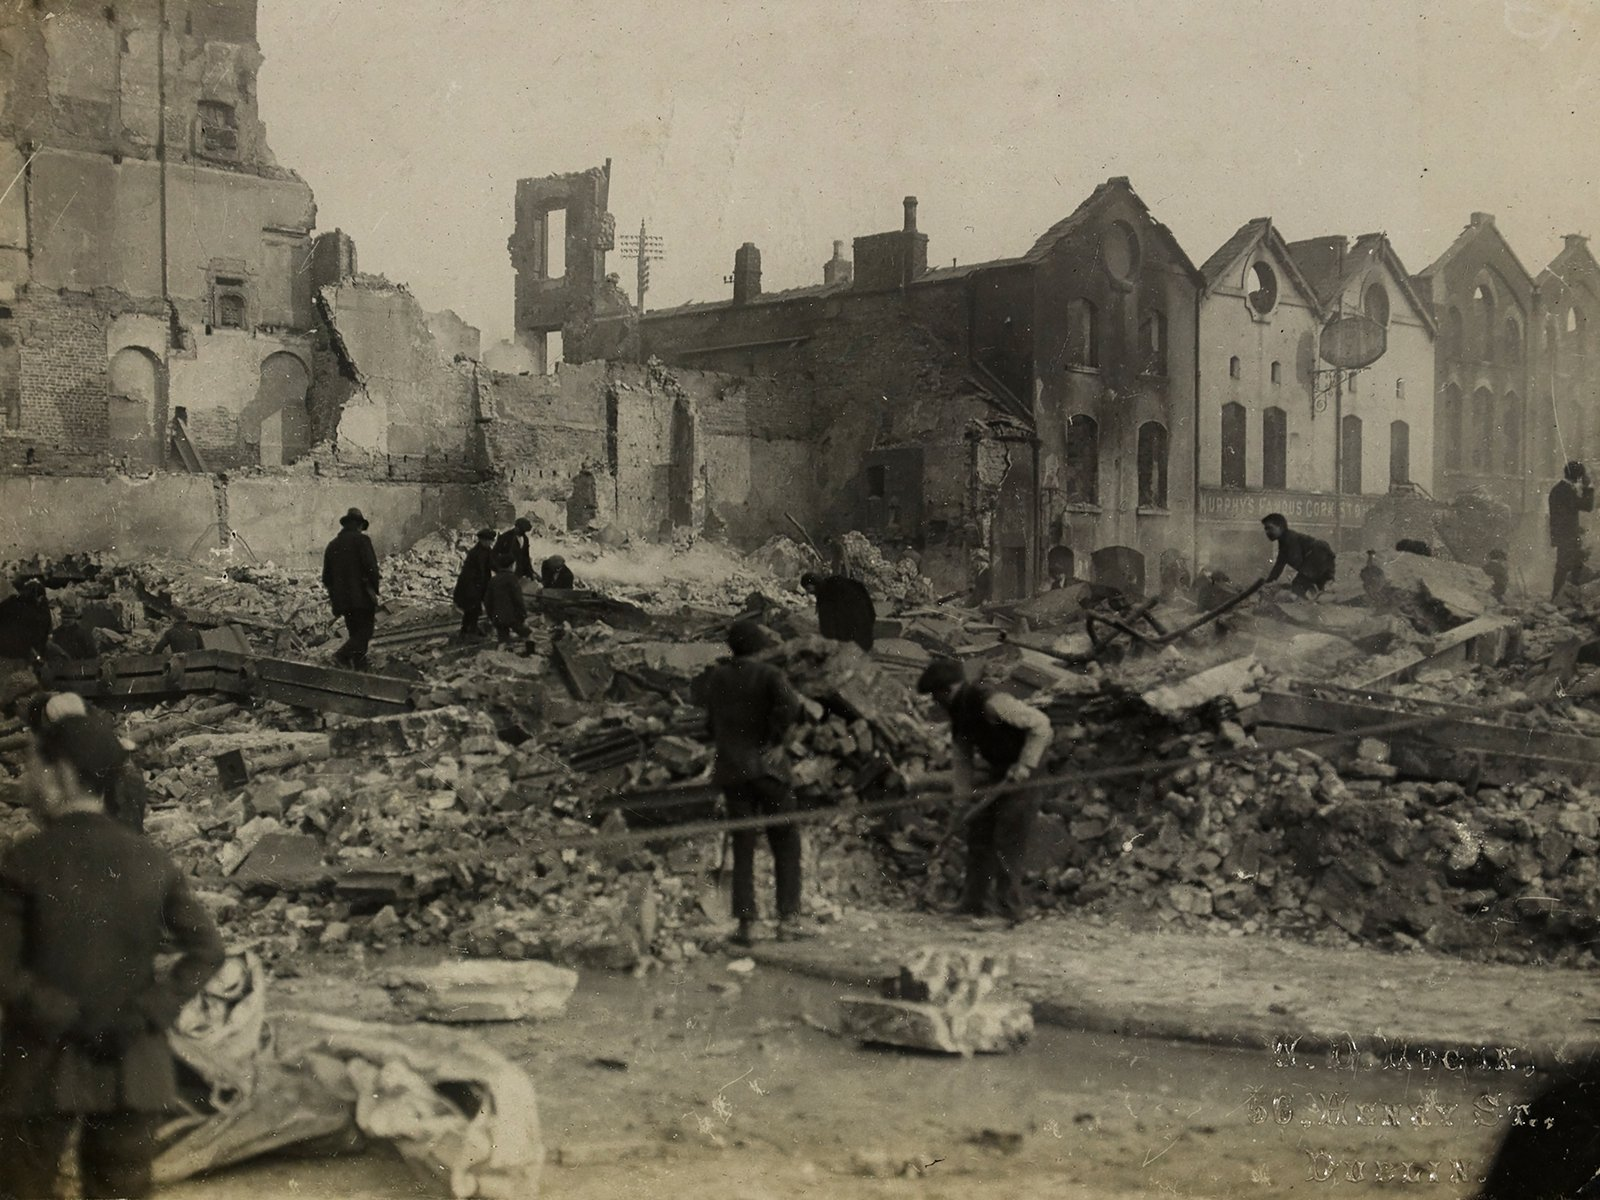 Image - The ruins of Cash's department store after its destruction by the Crown Forces. Image courtesy of the National Library of Ireland